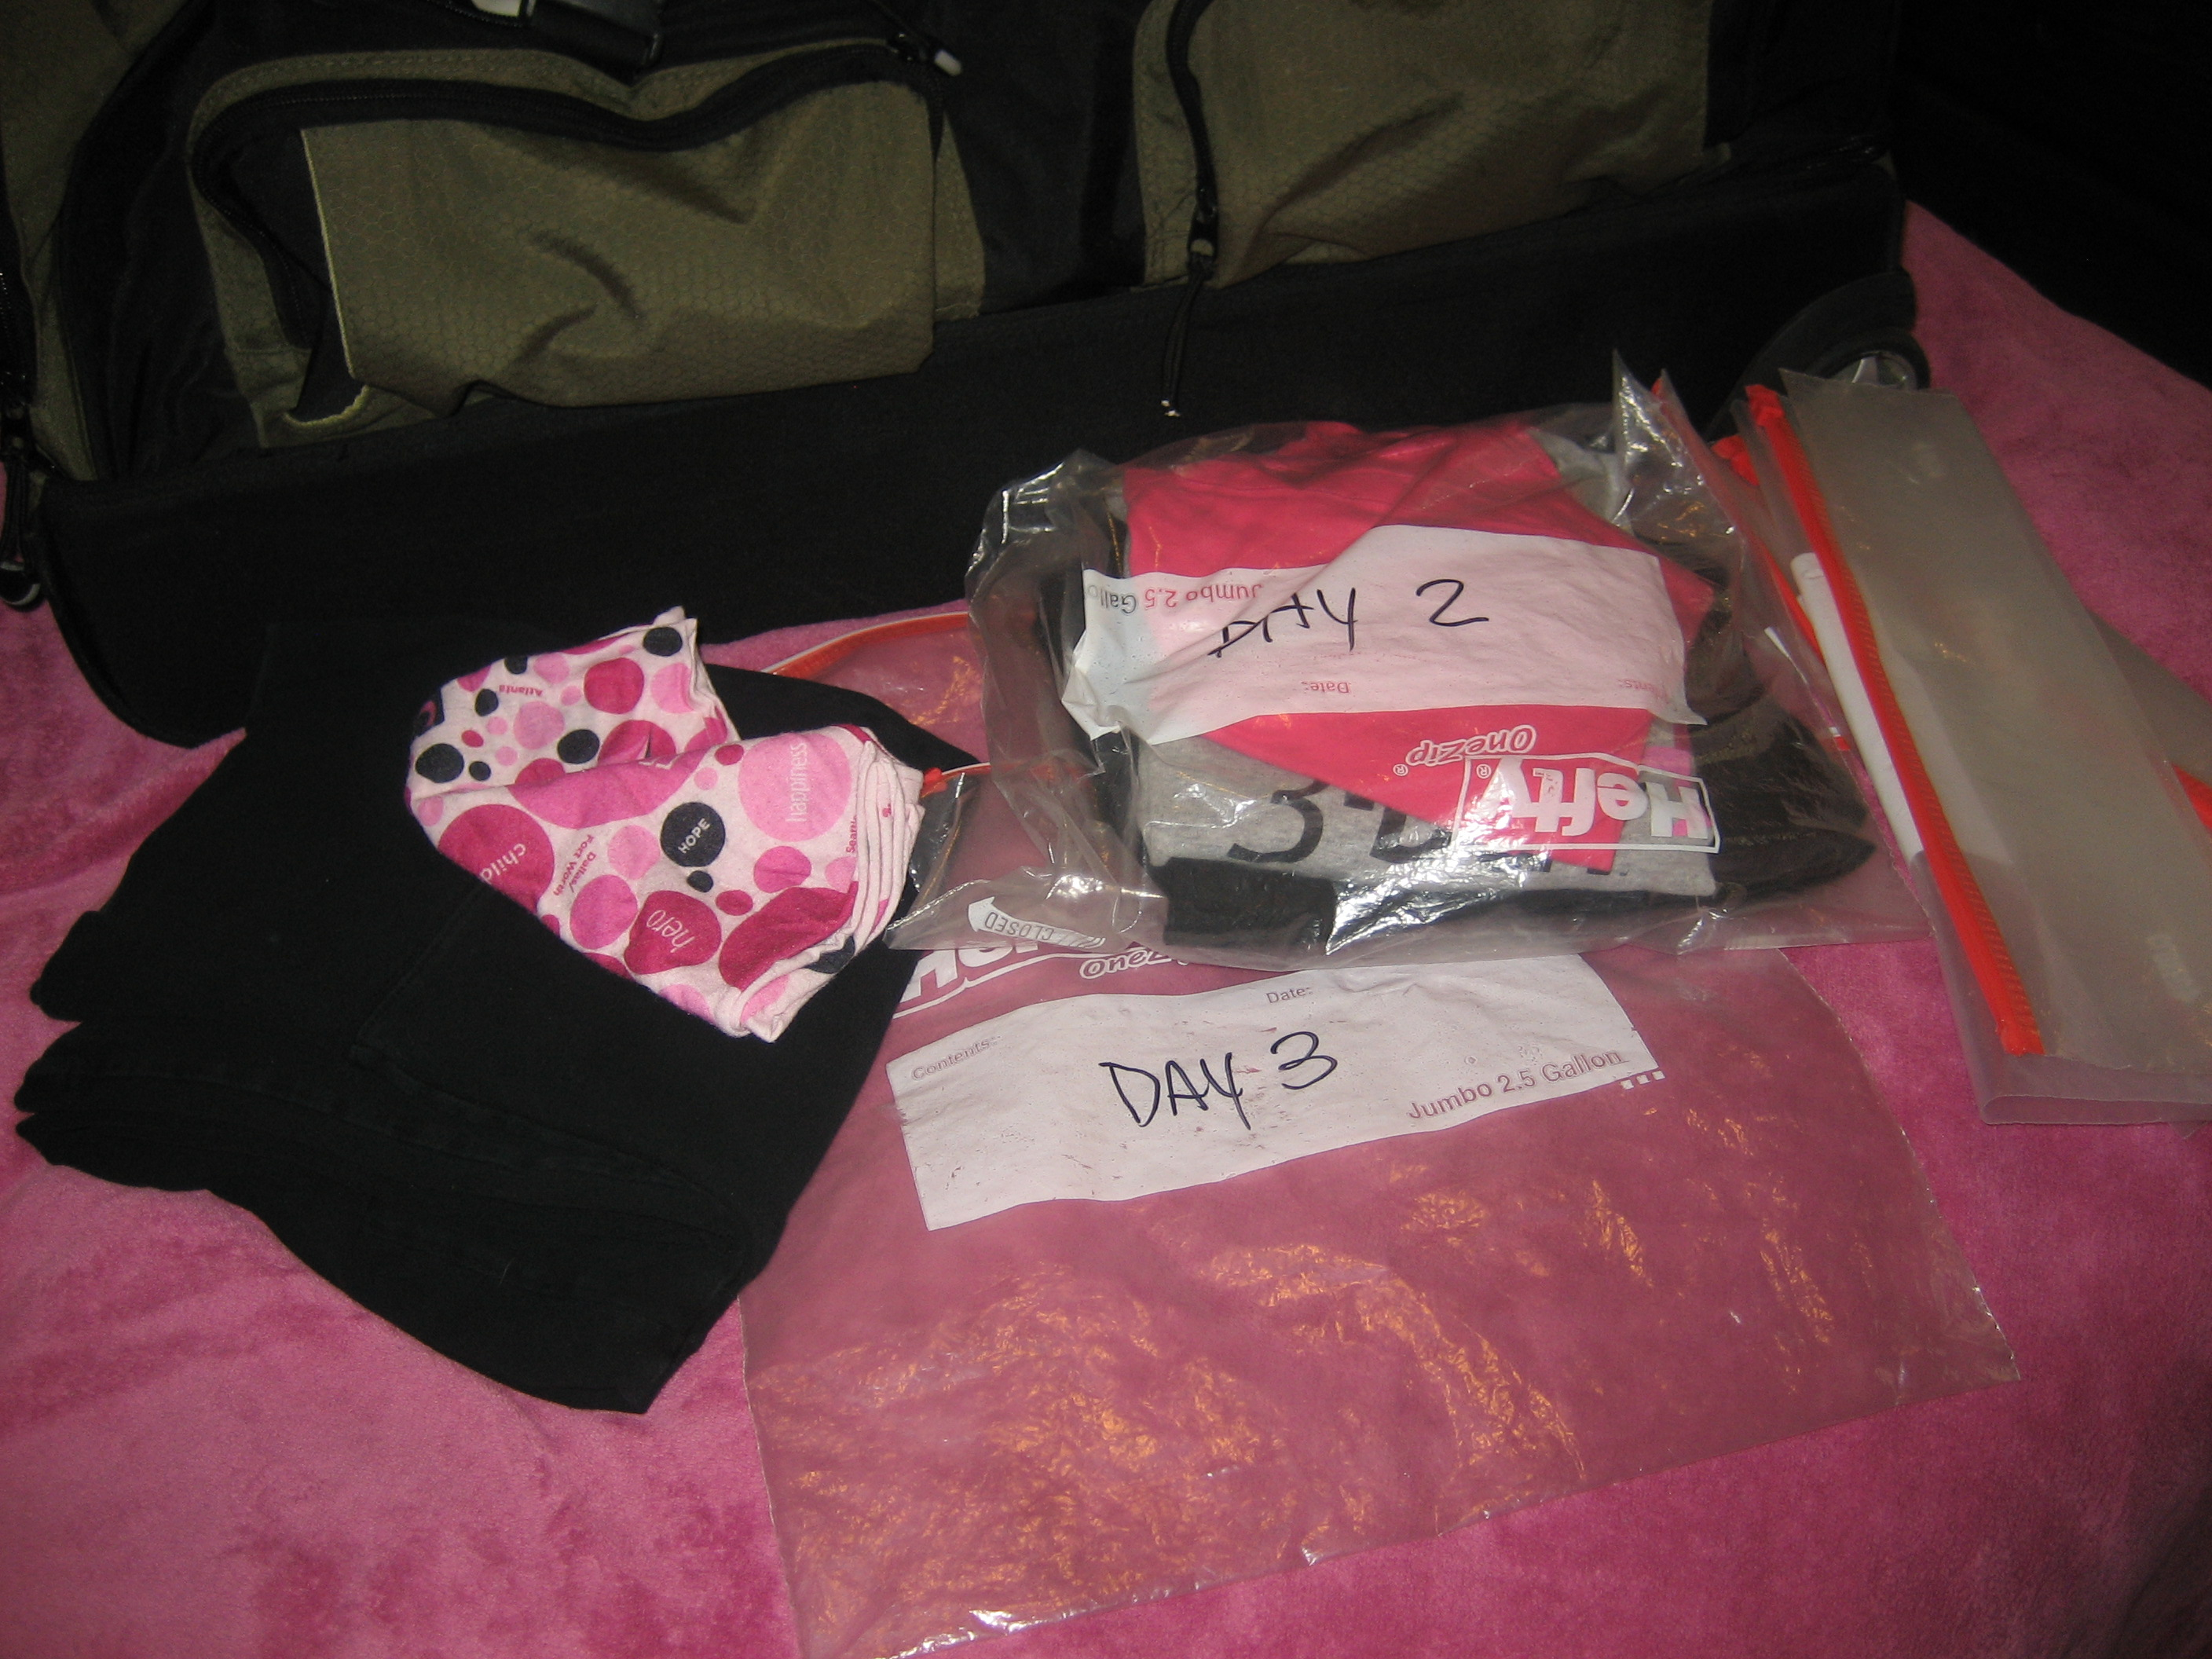 Susan G Komen 3 Day Breast Cancer Walk Blog Camping Hacks Ziploc Bags Clothes